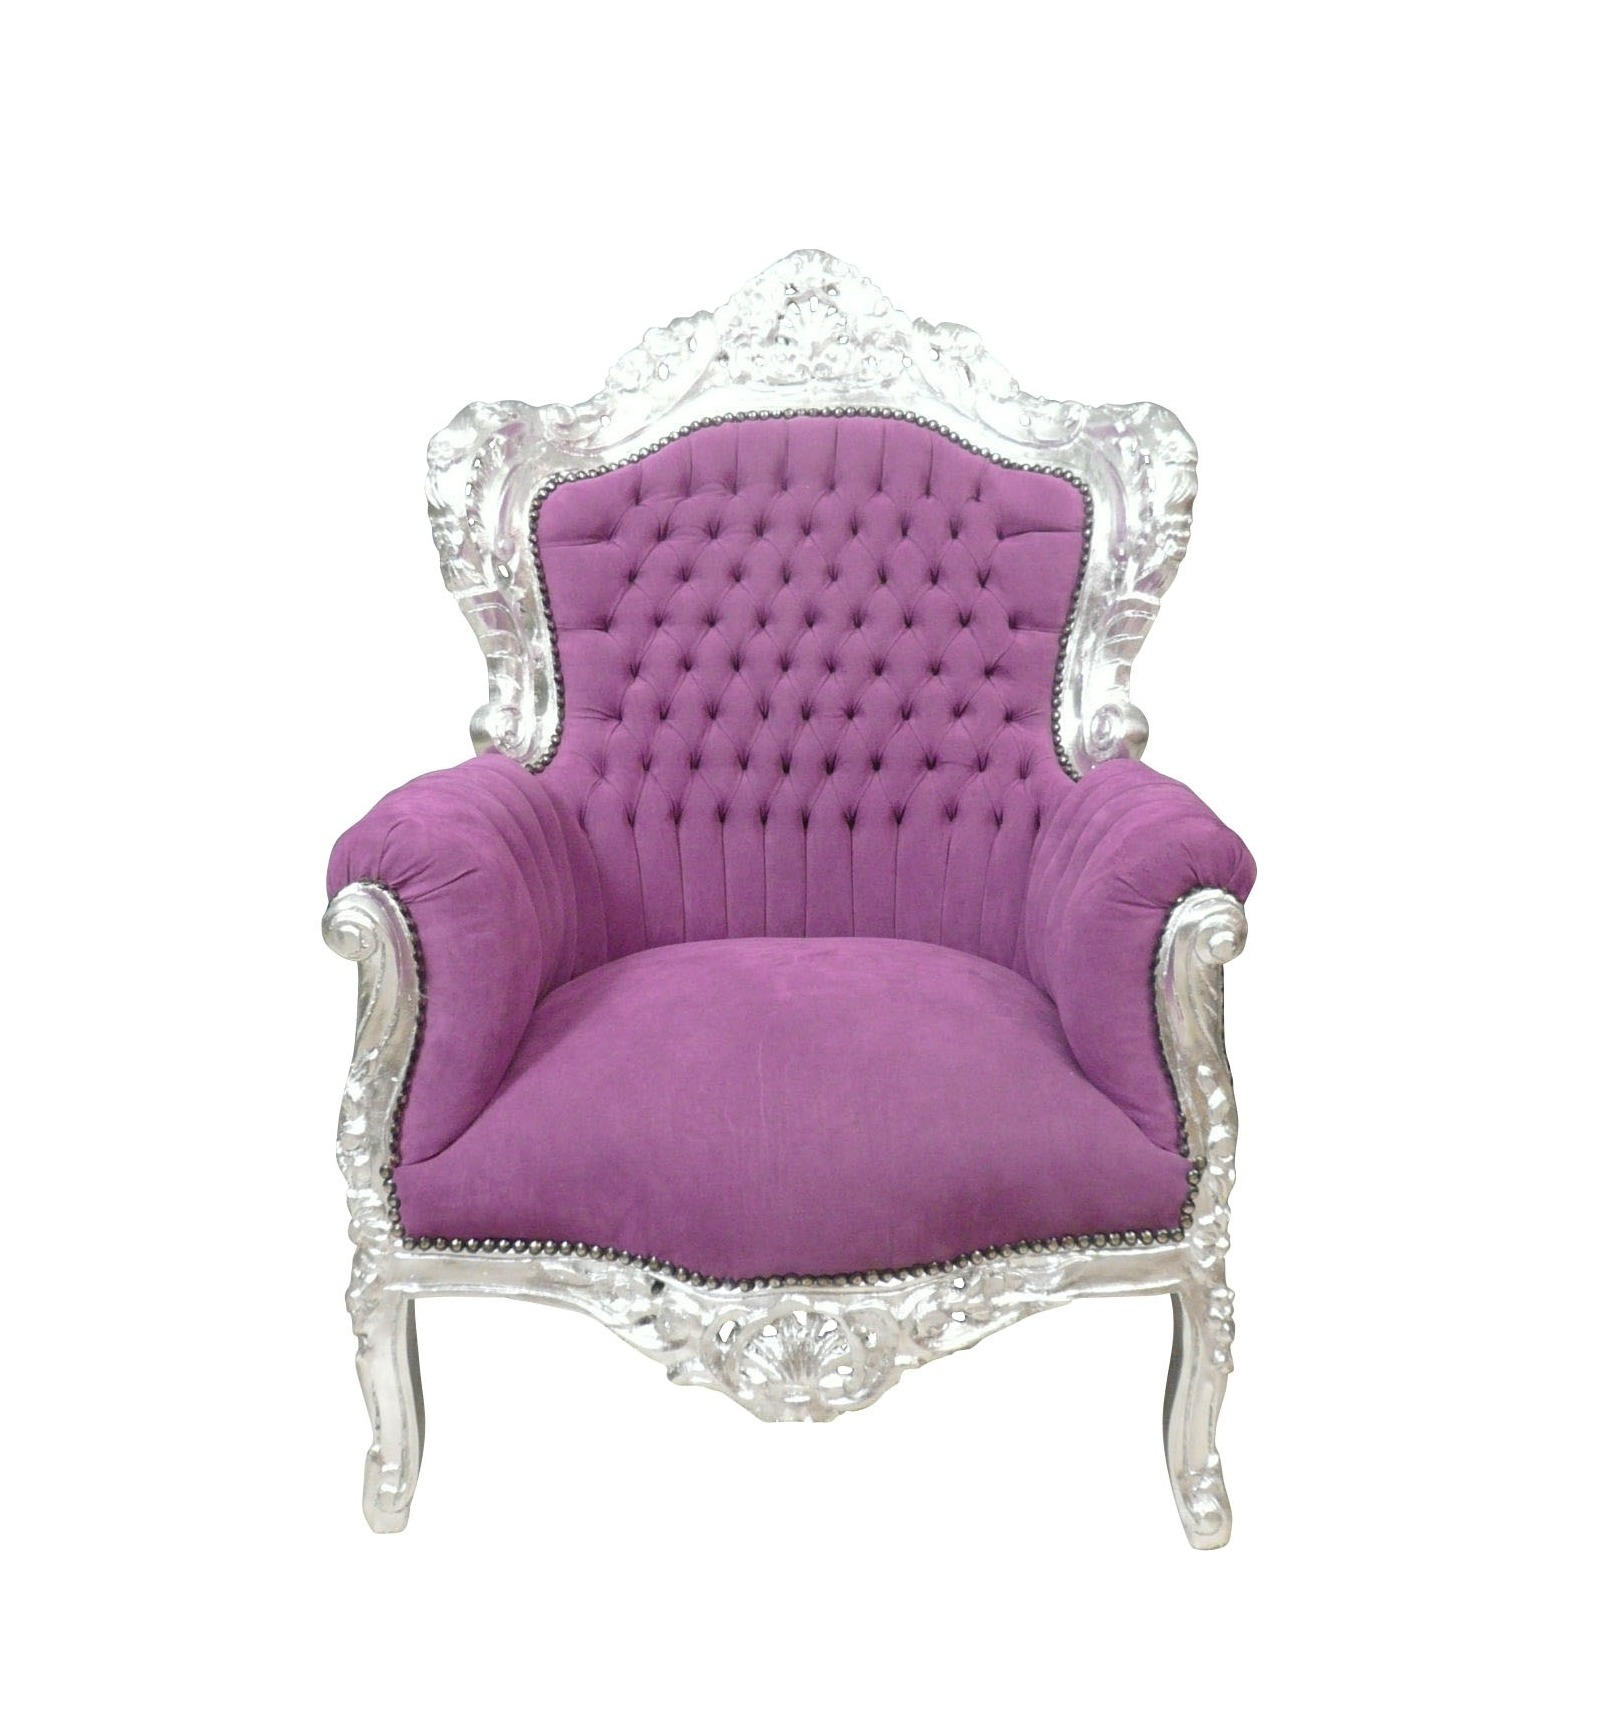 fauteuil baroque mauve mobilier de style. Black Bedroom Furniture Sets. Home Design Ideas